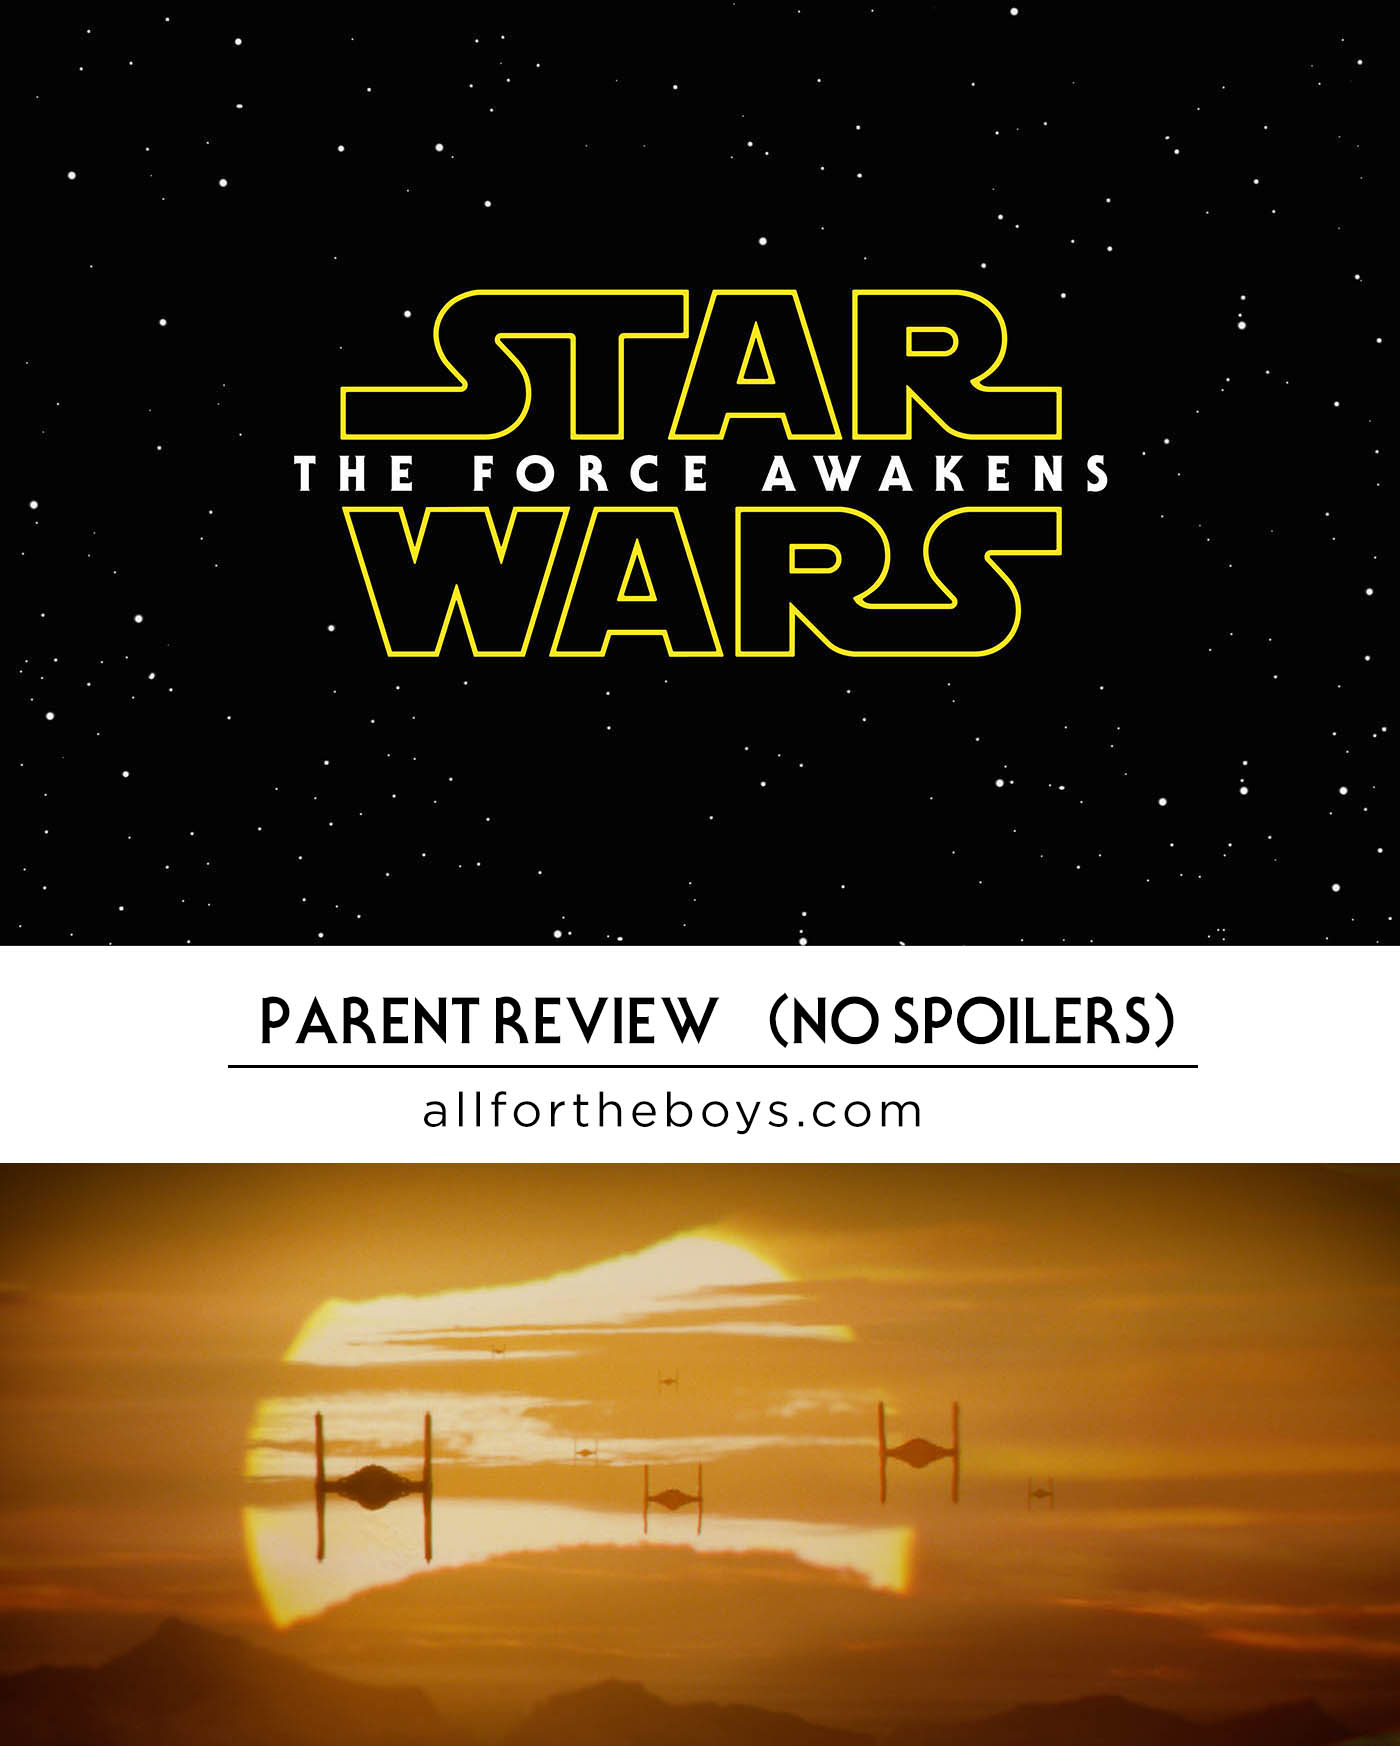 Star Wars: The Force Awakens parent review with no spoilers - or you can ask your questions in the comment section and she'll email you if the answer requires a spoiler!